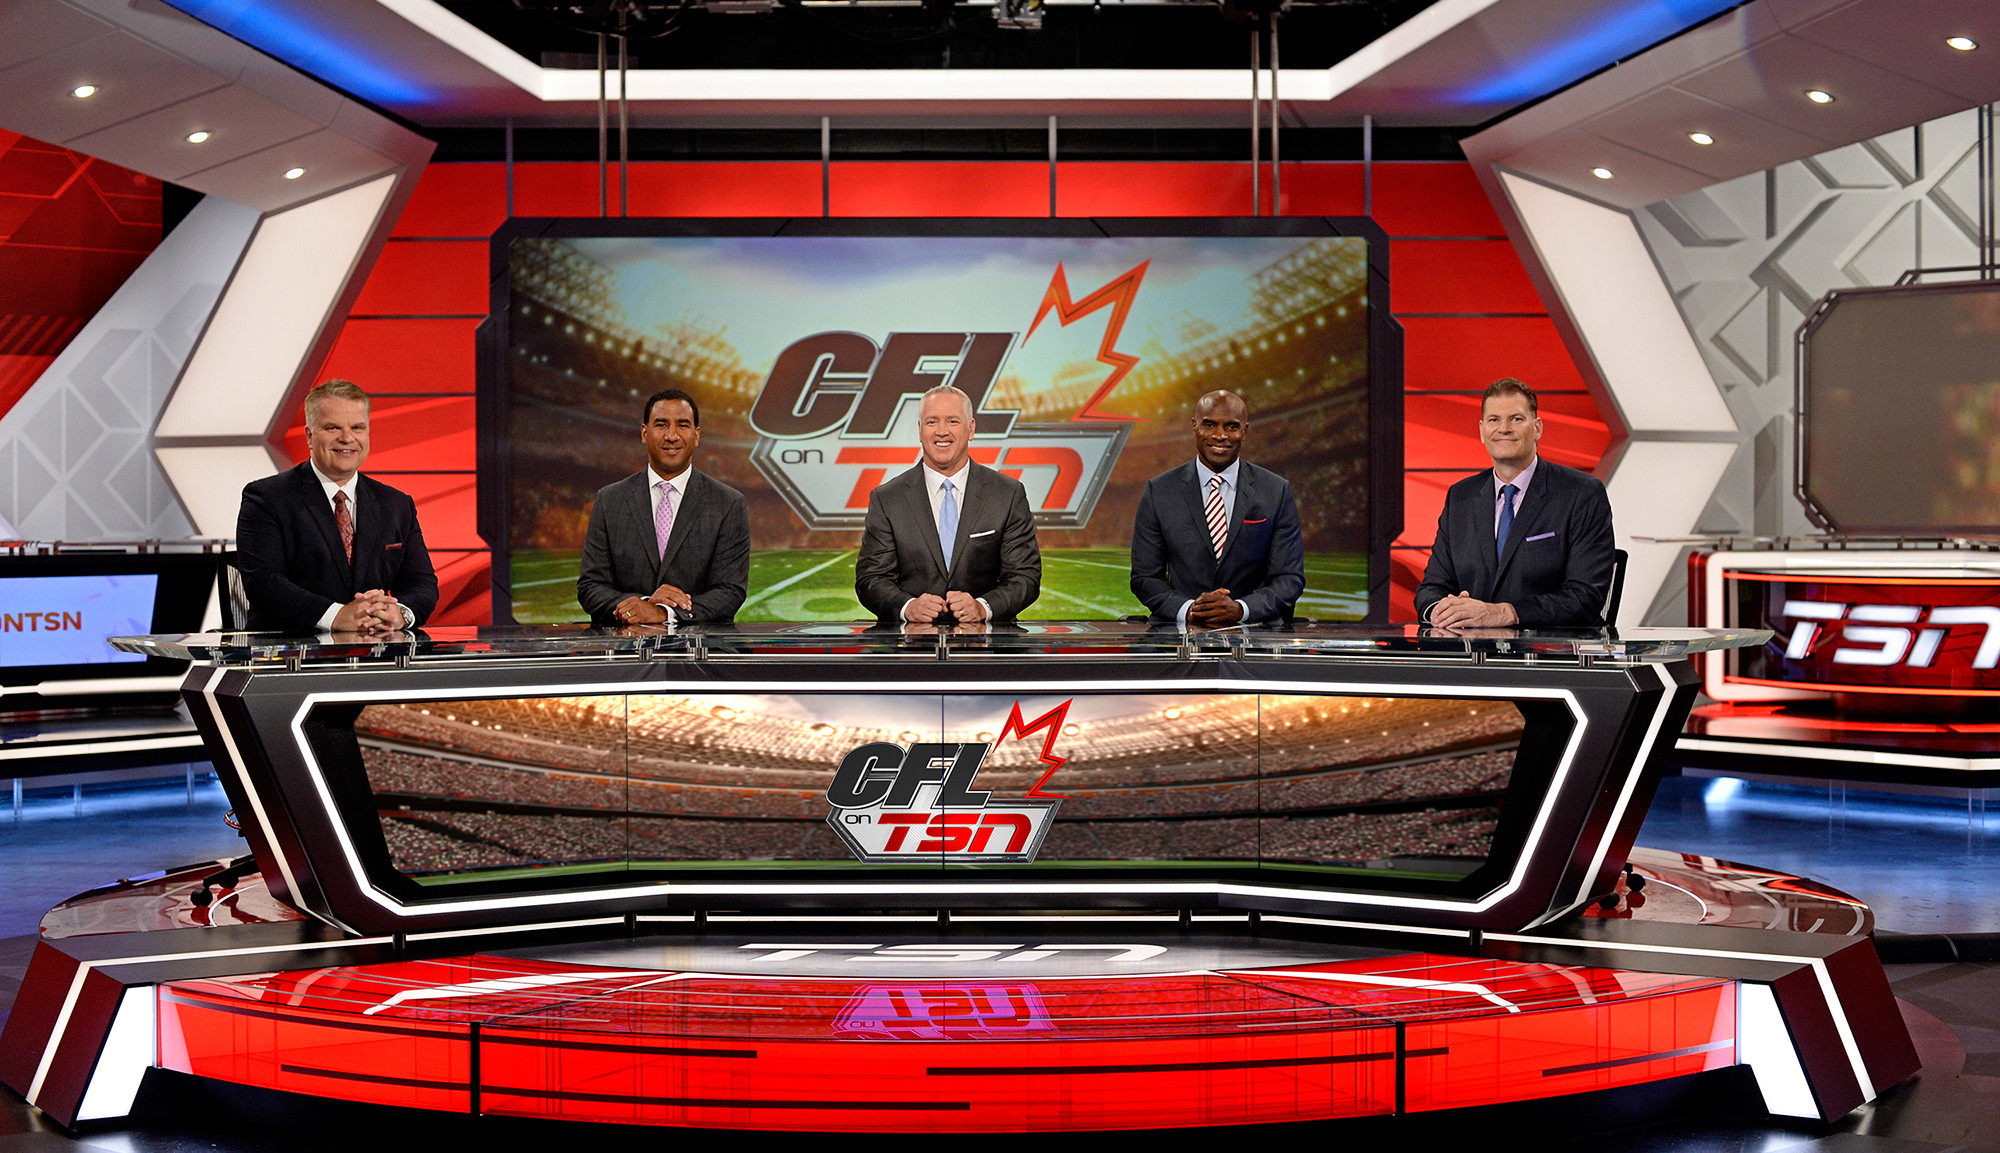 TSN's popular CFL ON TSN panel is back for the 2015 season. (L-R) Host Rod Smith alongside analysts Jock Climie, Matt Dunigan, Milt Stegall, and Chris Schultz. DOWNLOAD PHOTO: http://bit.ly/1RtUg9M